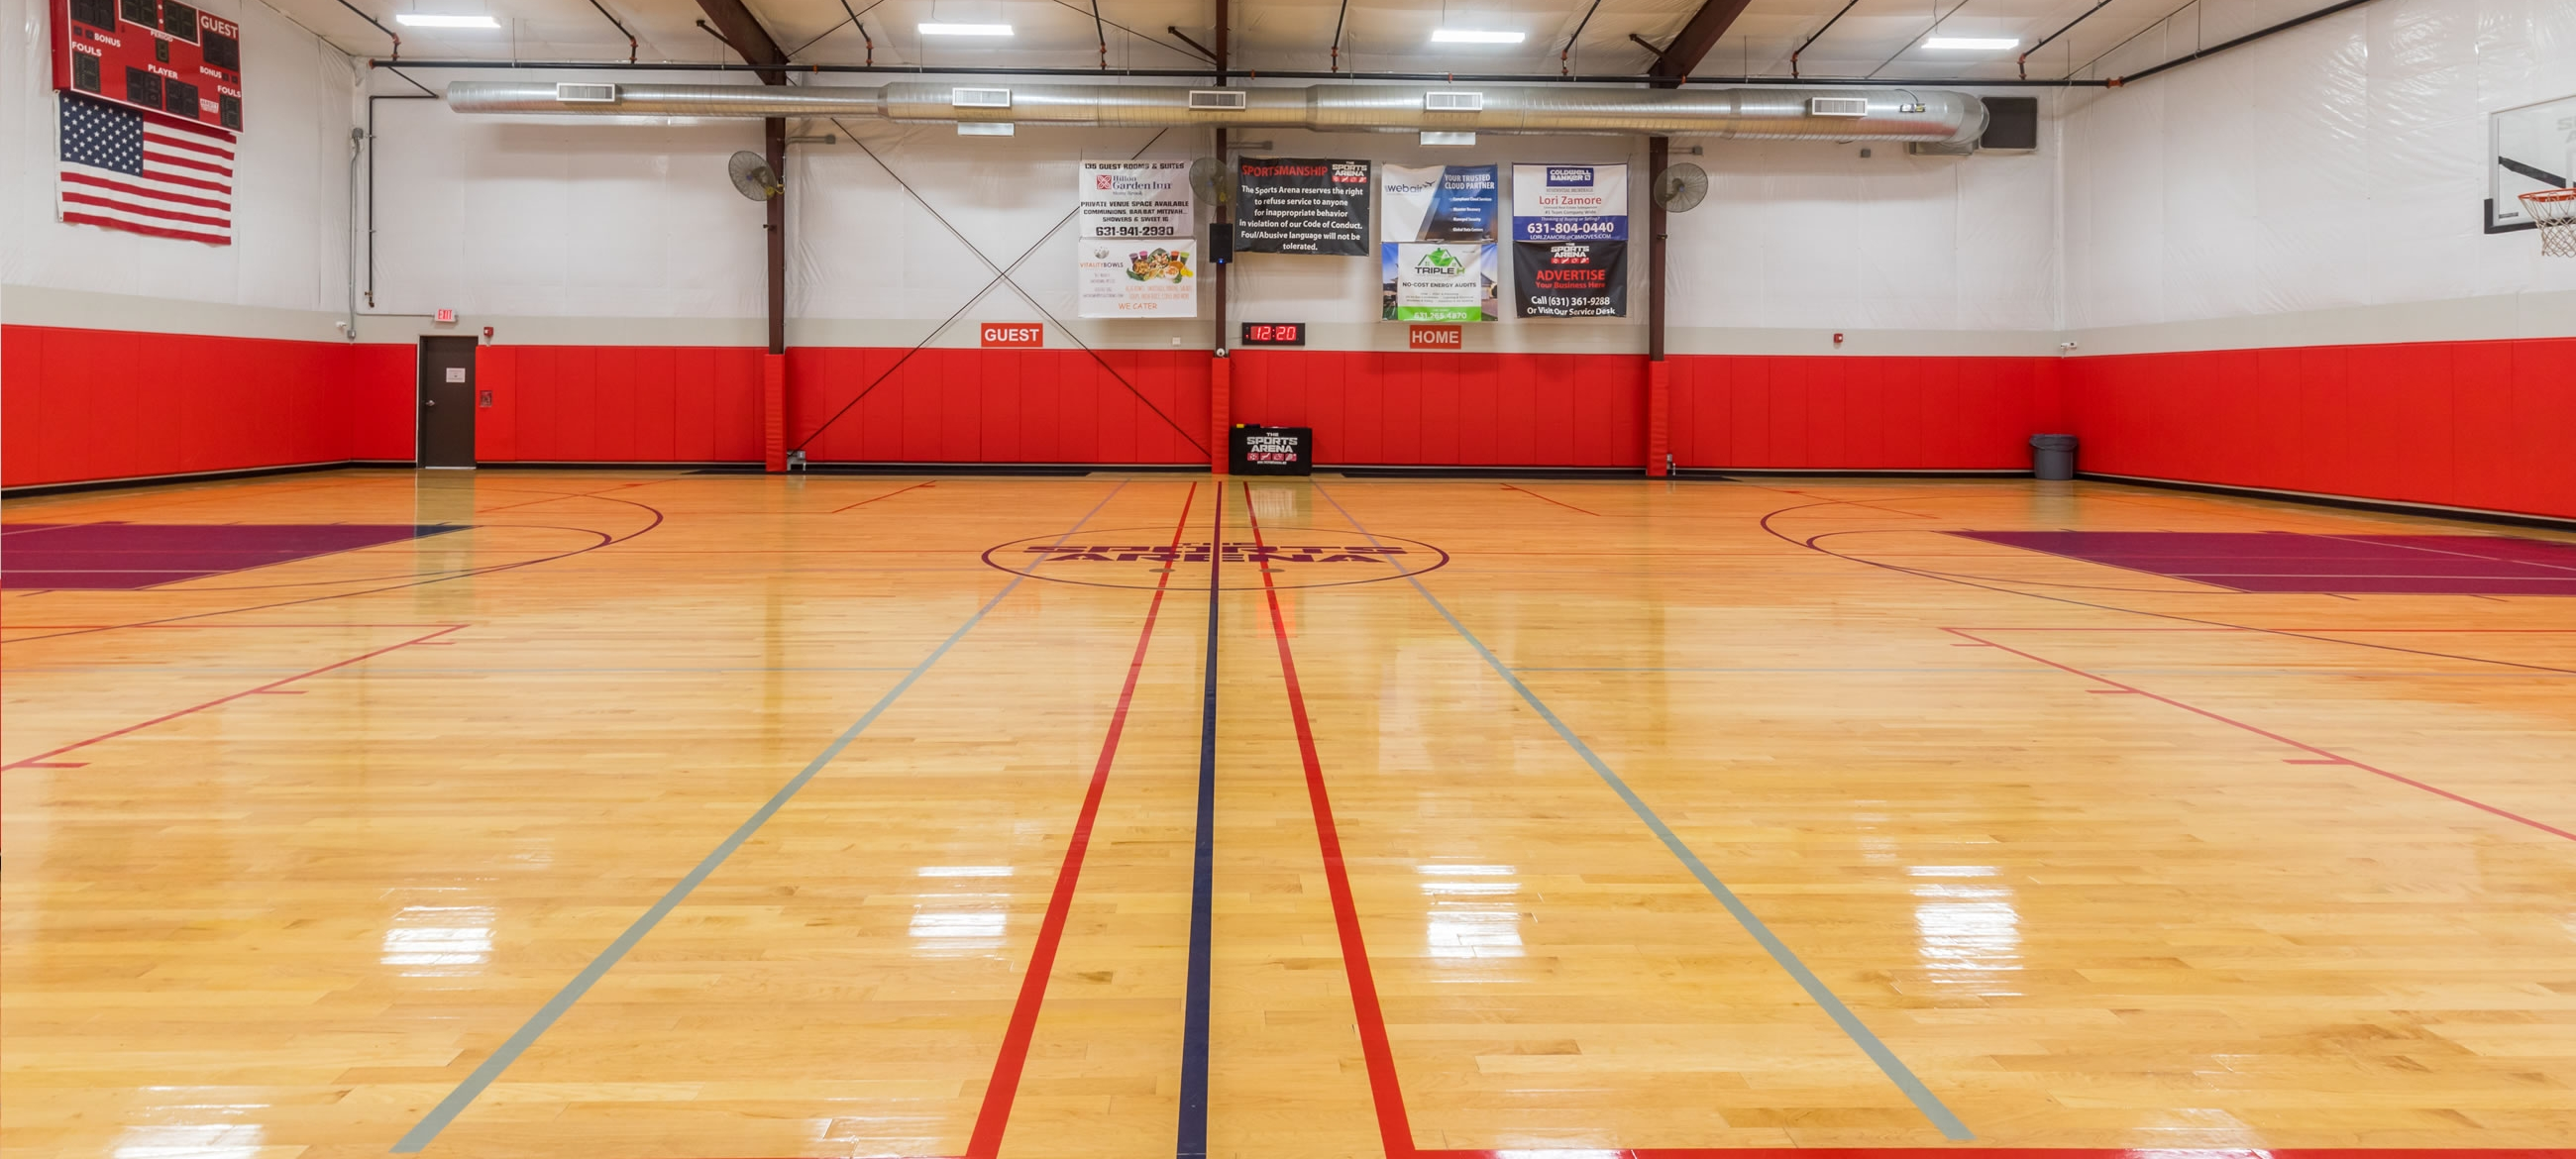 Gymnasium Long Island Indoor Sports Facility The Sports Arena